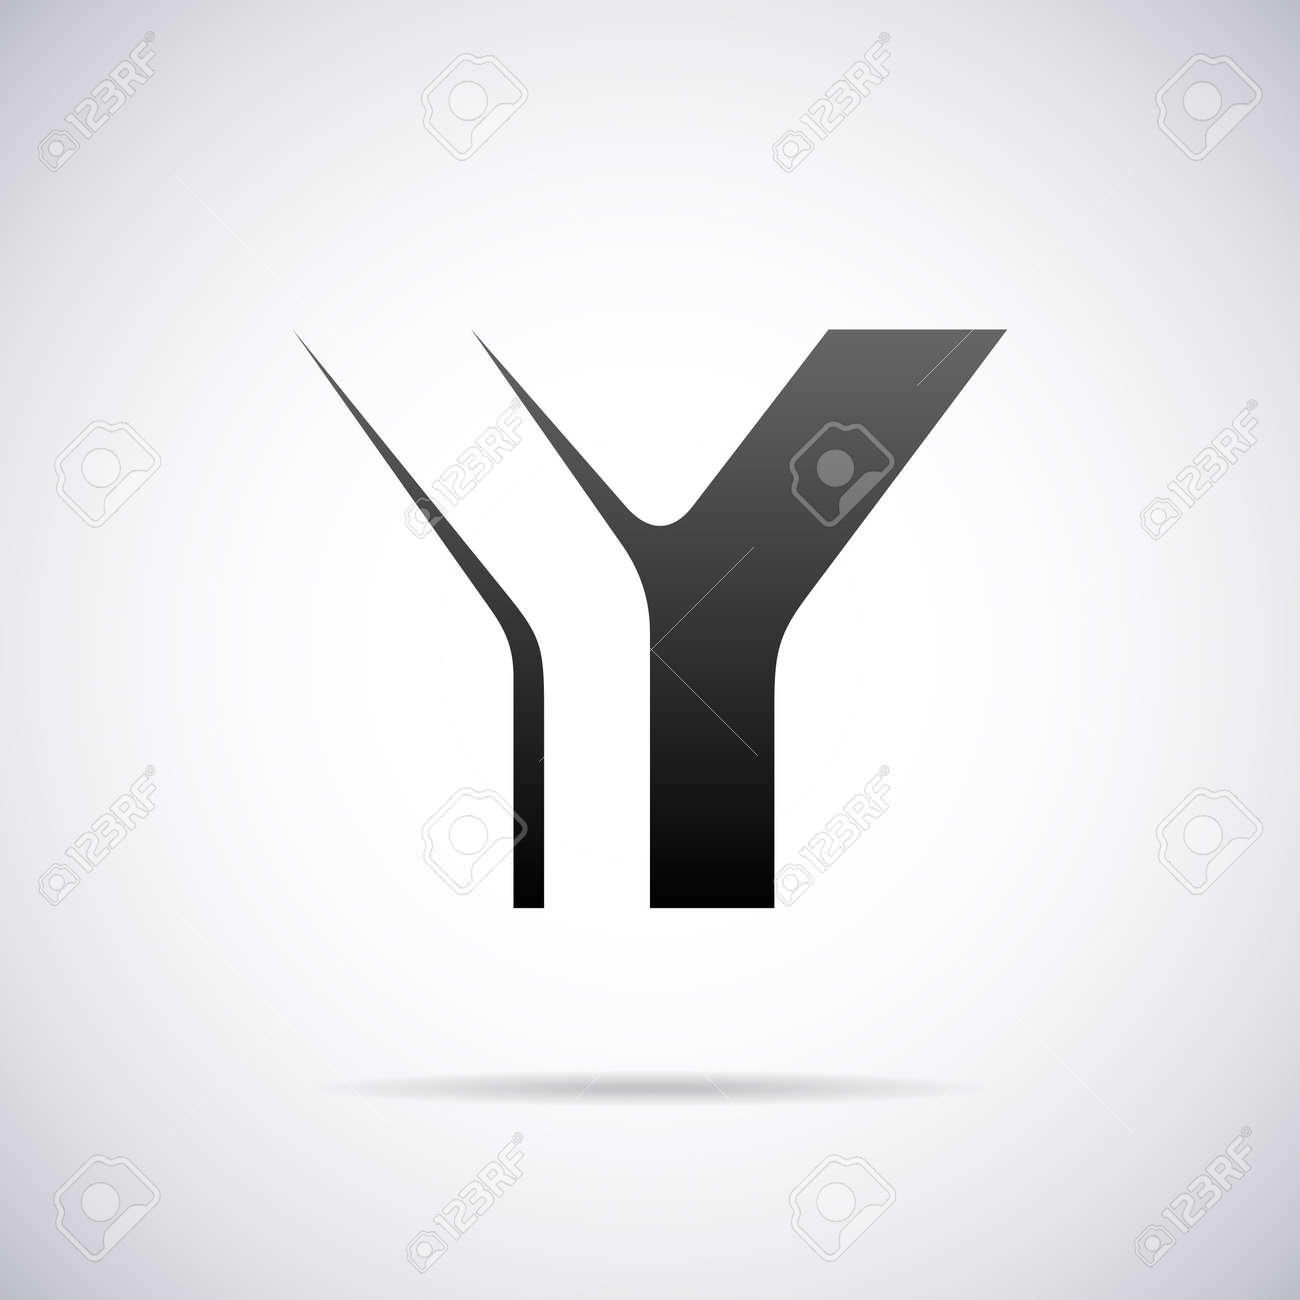 Letter Y Design Template Vector Illustration Royalty Free Cliparts